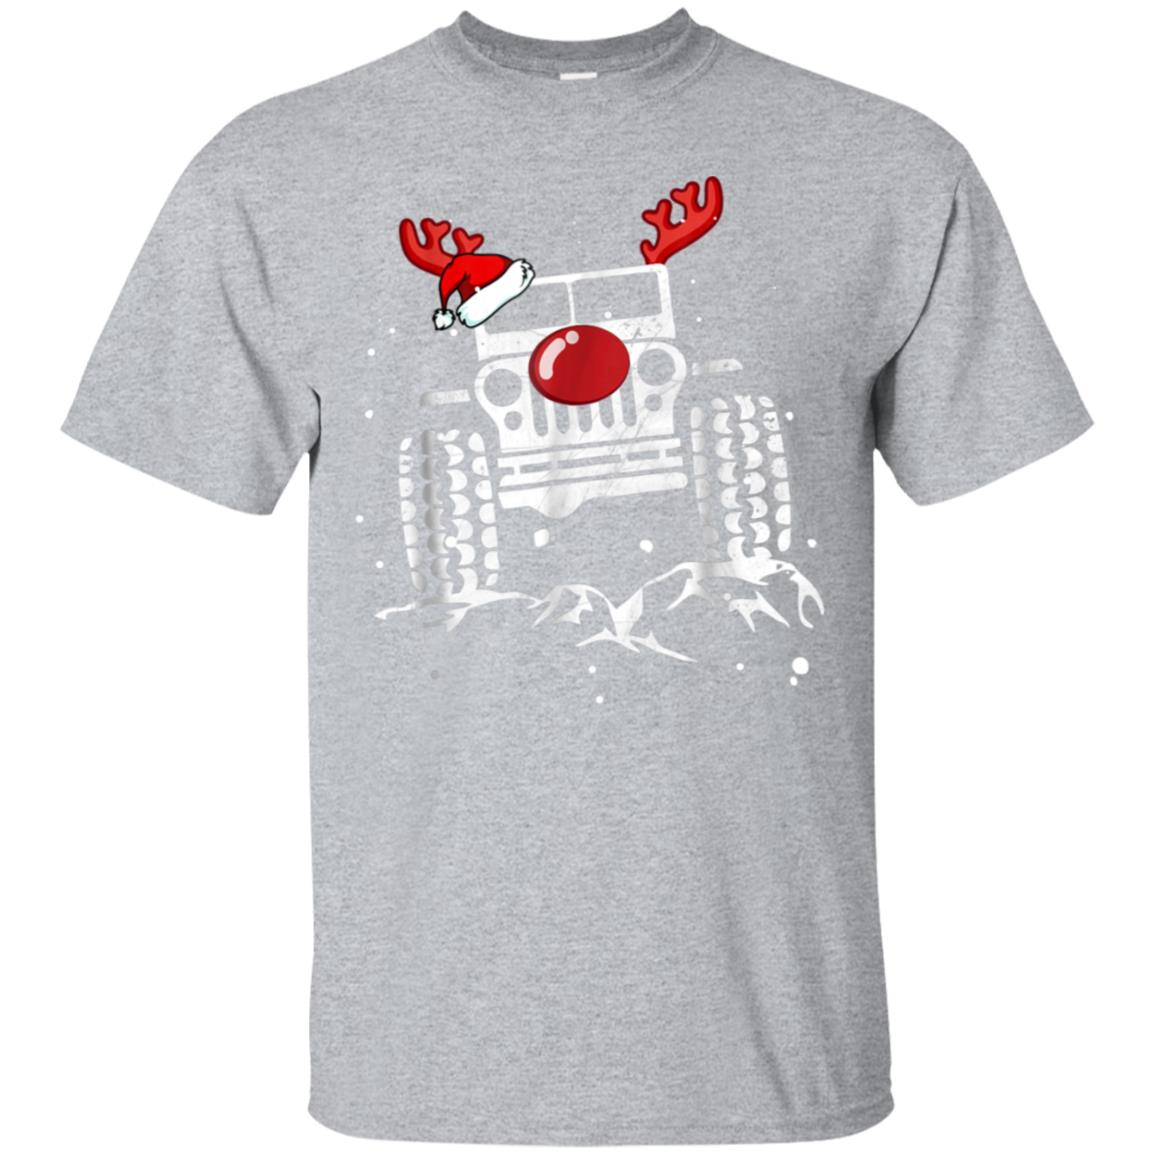 Funny Jeep Reindeer Christmas Holiday T Shirt Gift Costume 99promocode